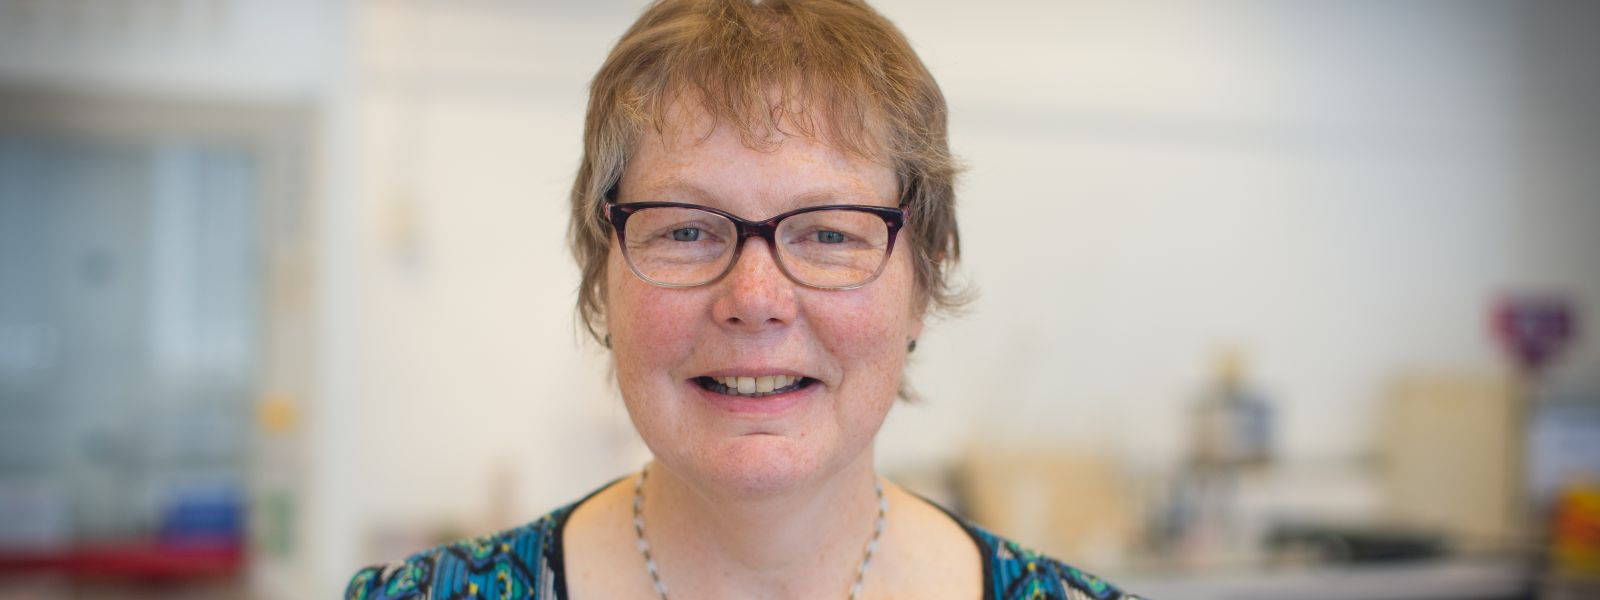 Dr Jane Essex (photo courtesy: Royal Society of Chemistry).